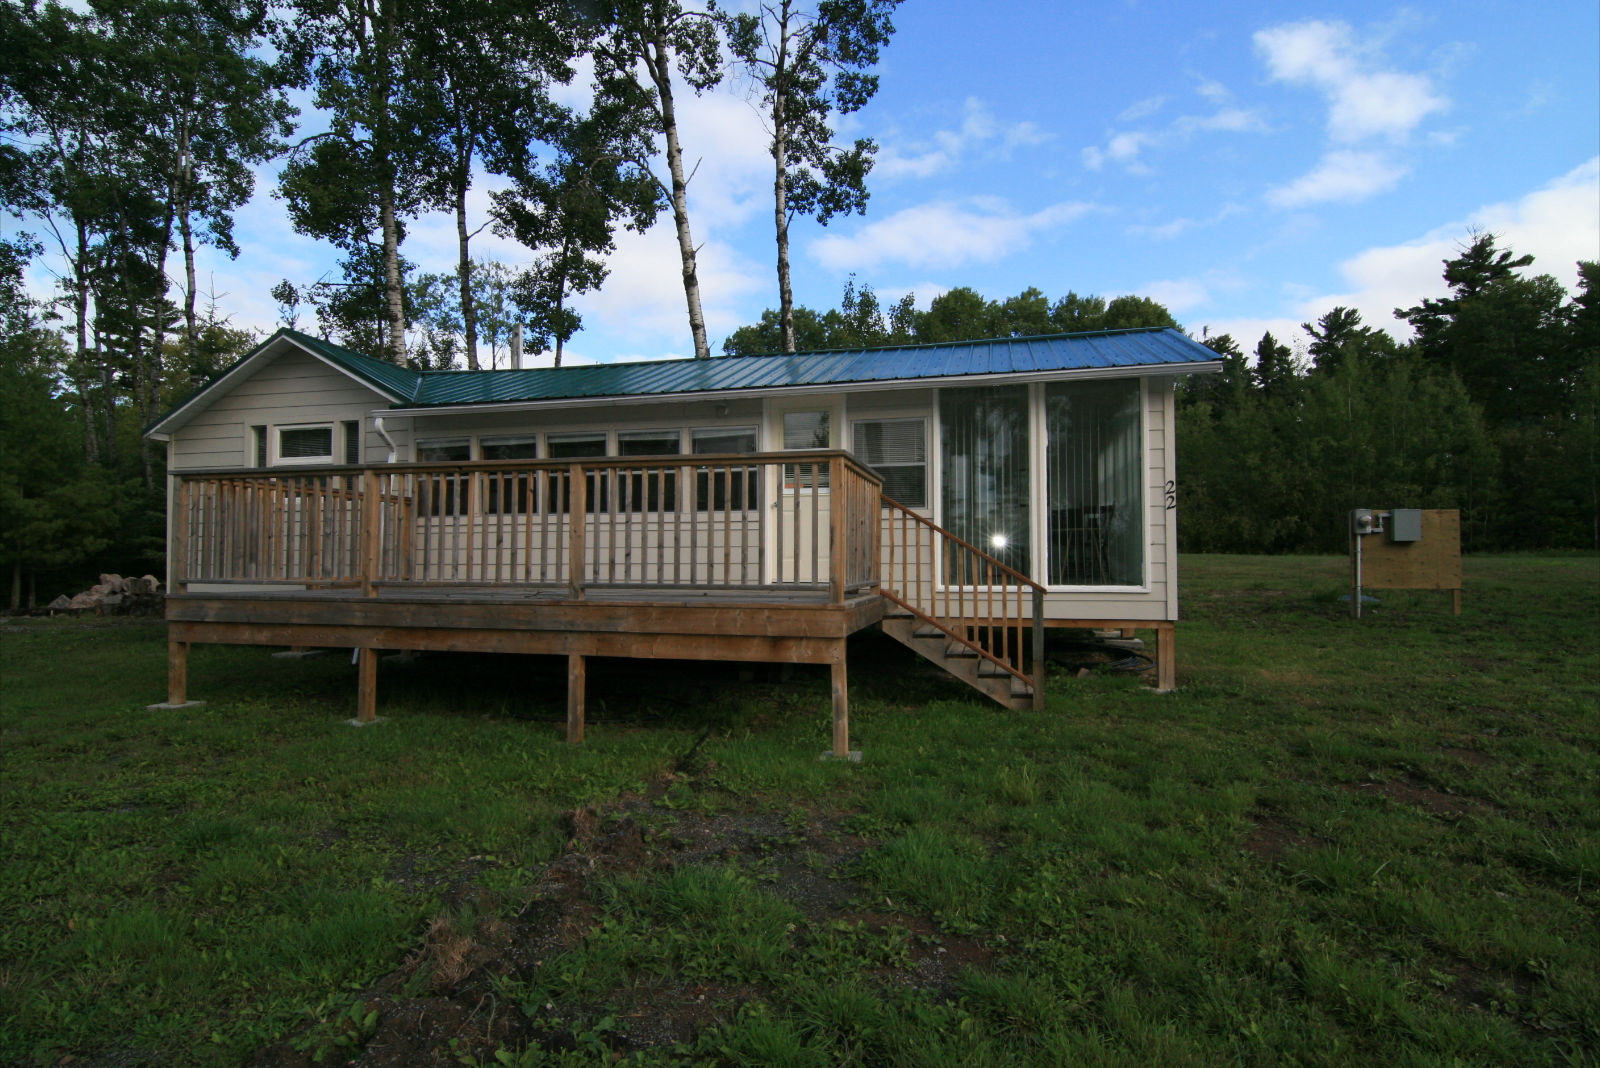 Lakeview Cottages for Sale - Longbow Lake Resort Inc